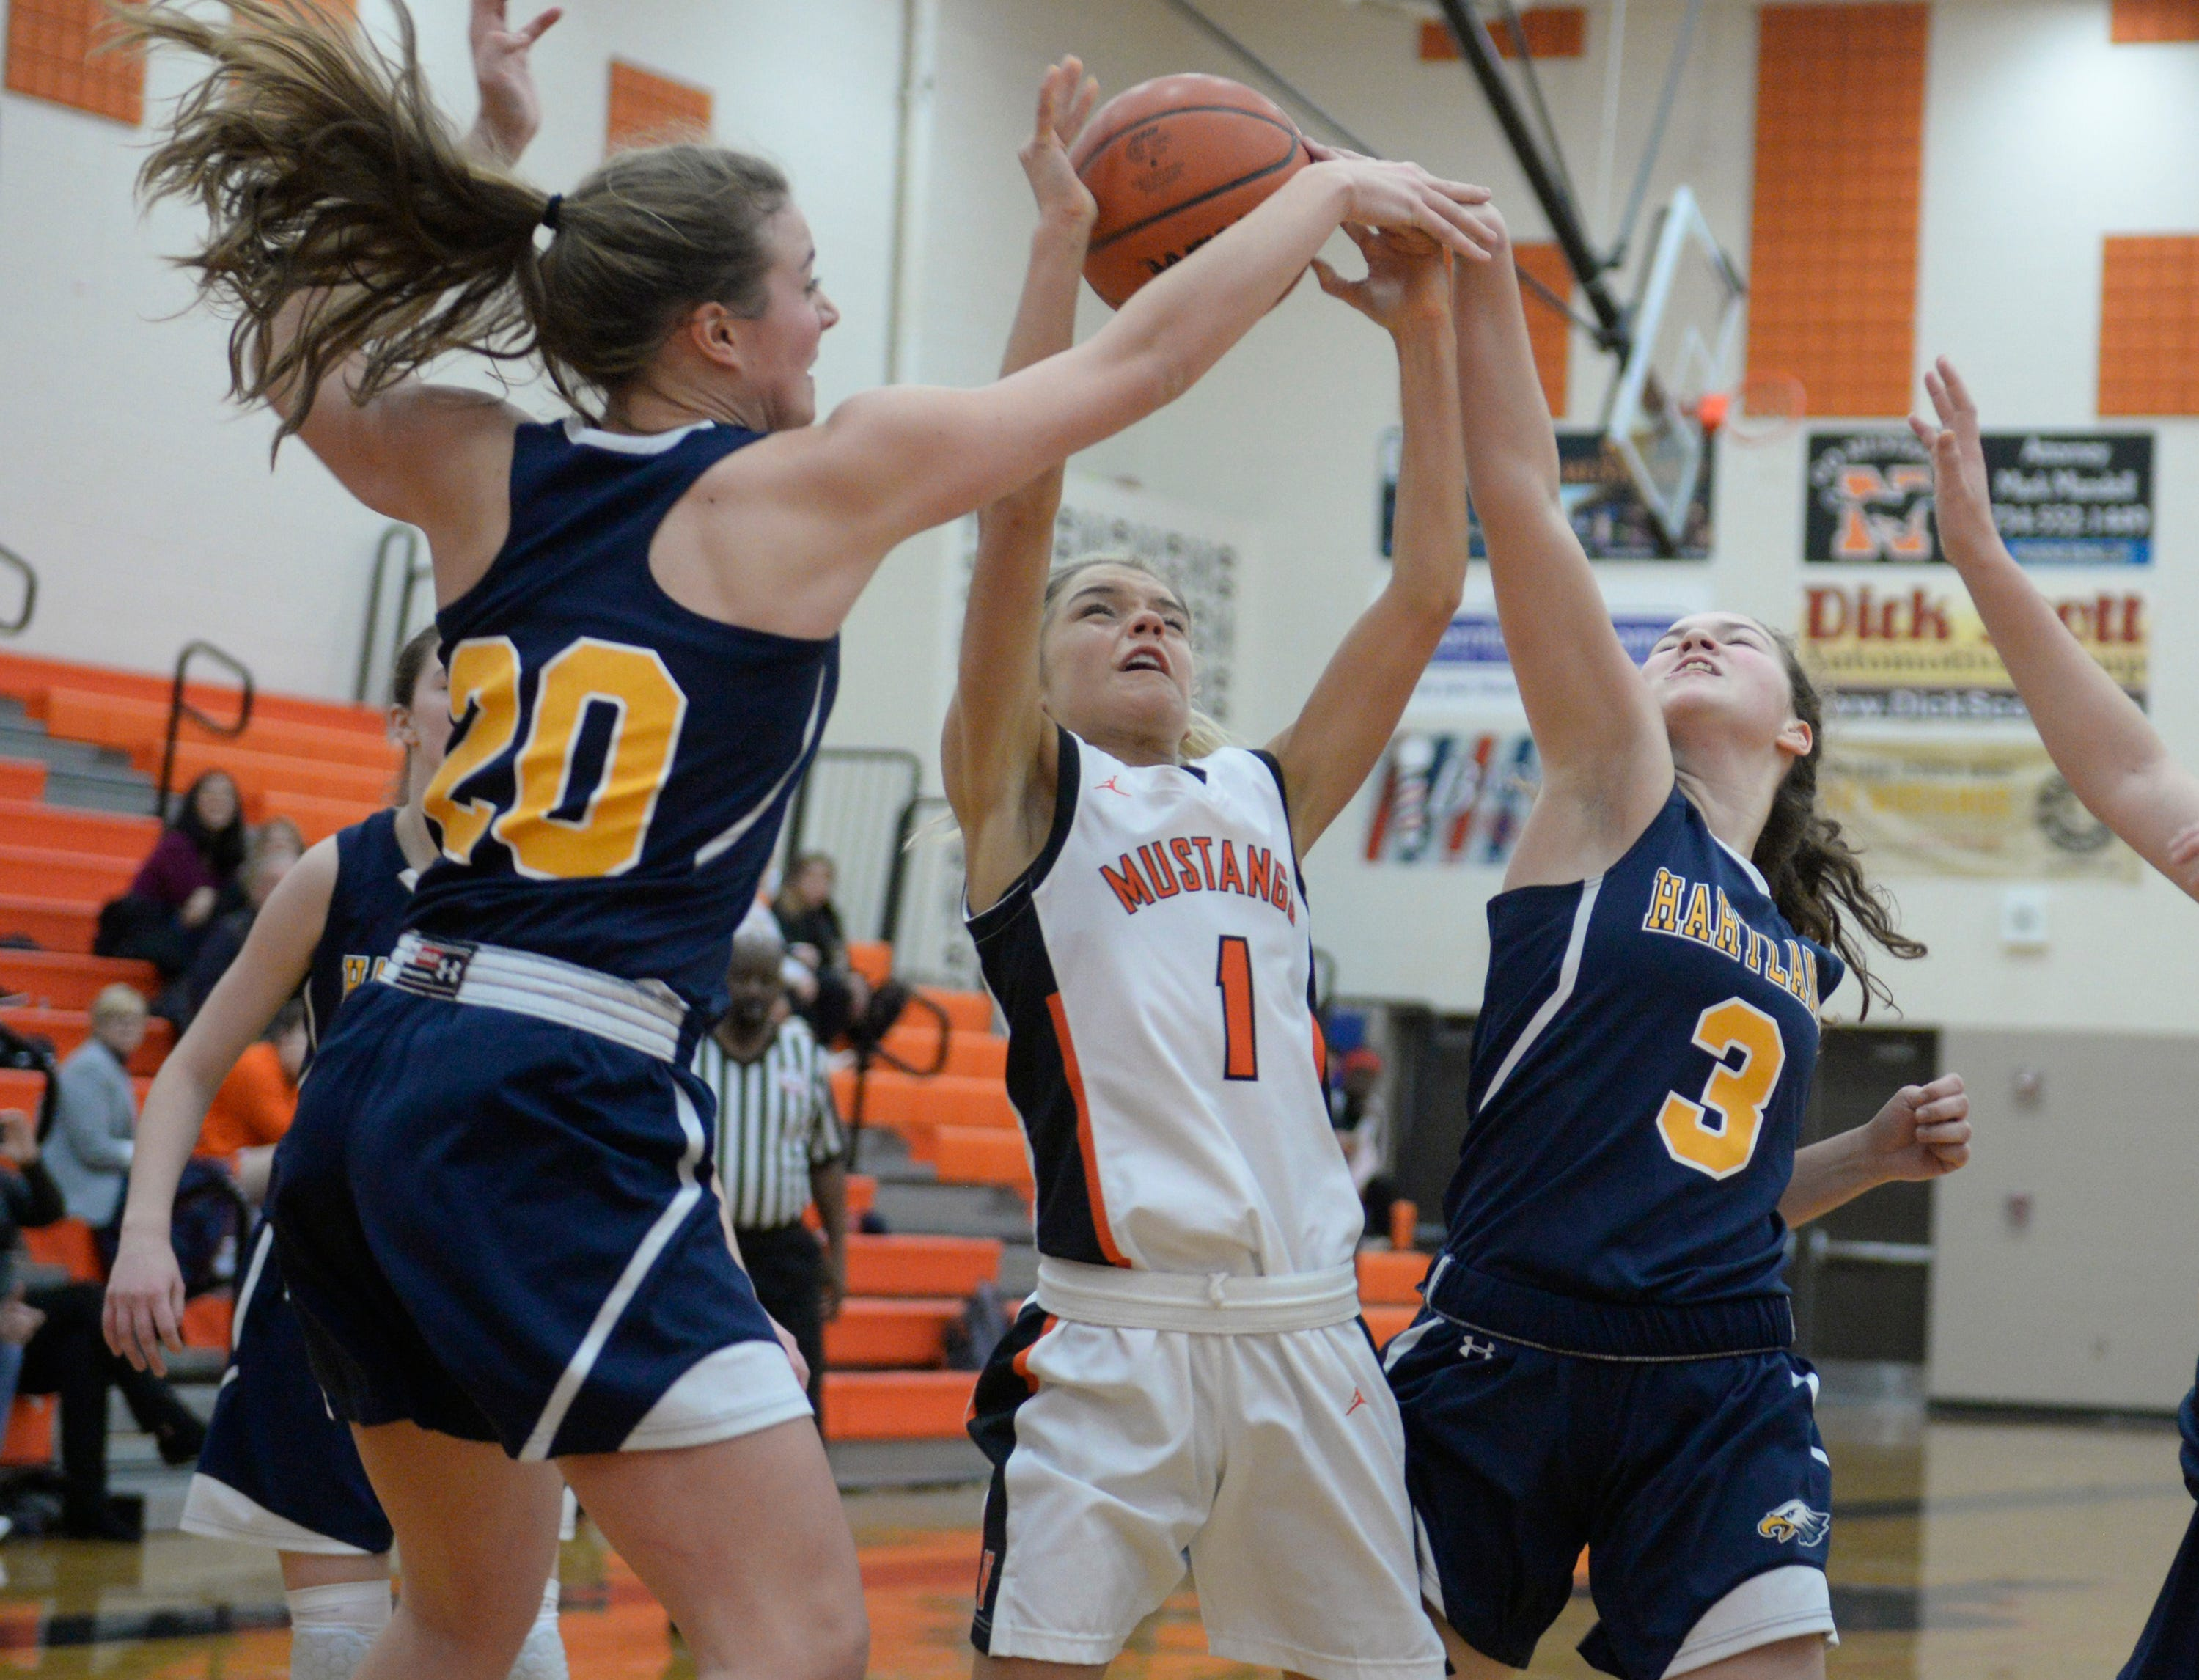 Northville's Jenna Lauderback (1) is guarded by Hartland's Lillee Gustafson (20) and Leah Lappin (3) during a KLAA match up between the Mustangs and Eagles at Northville Jan. 8, 2019